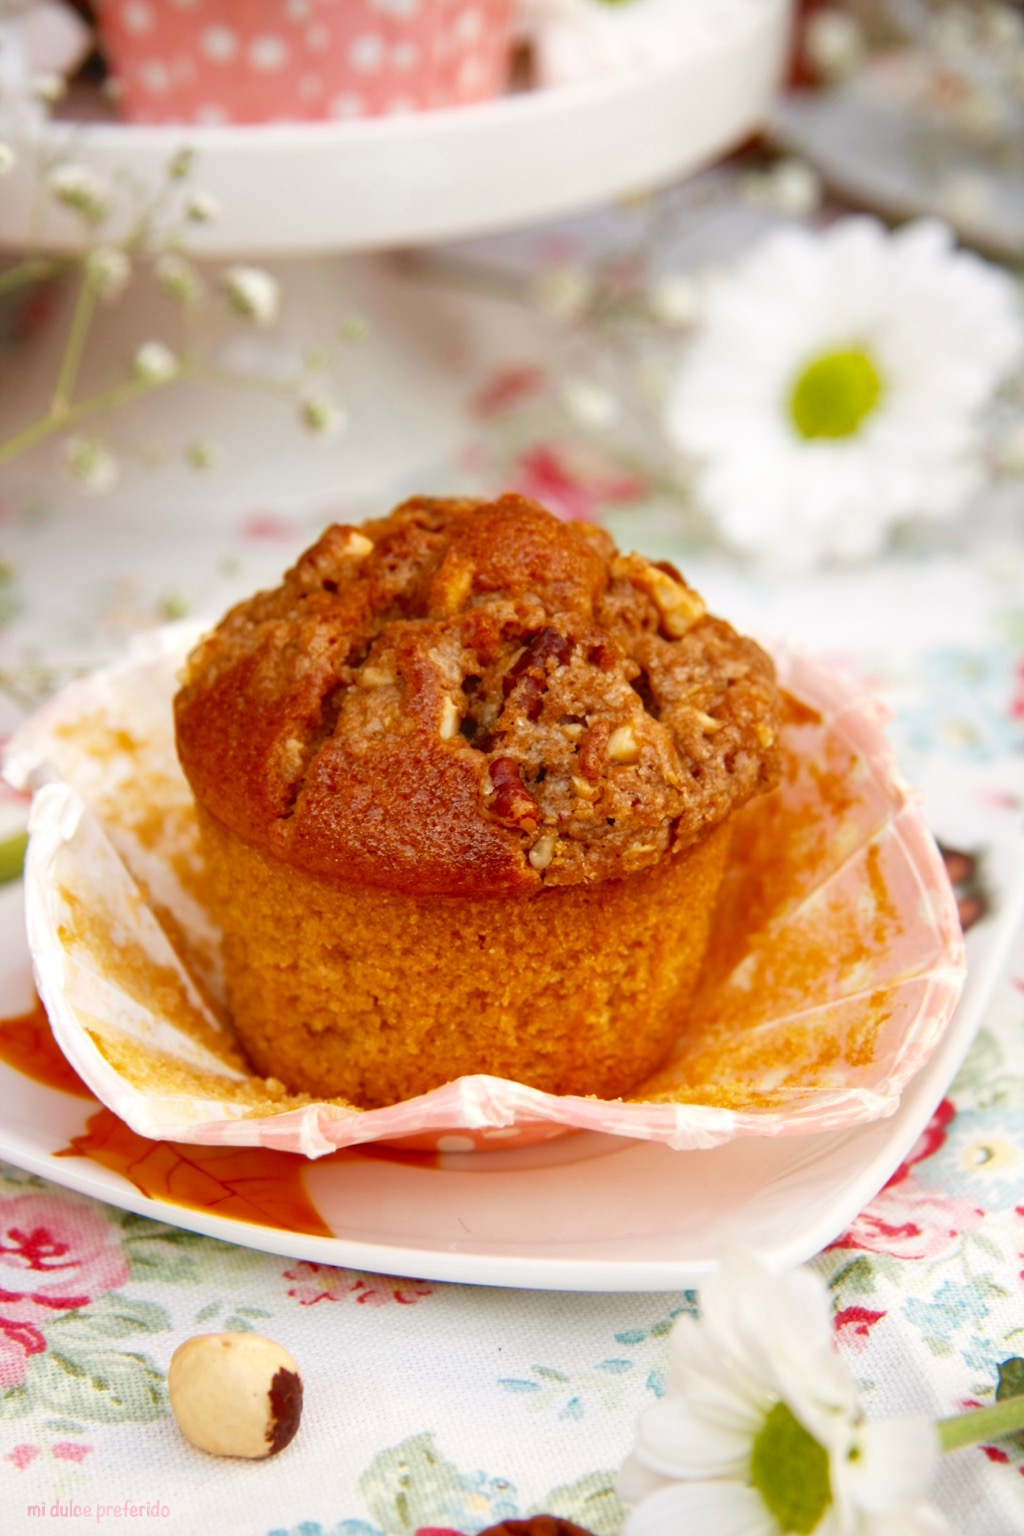 muffins-de-toffee-y-frutos-secos-8